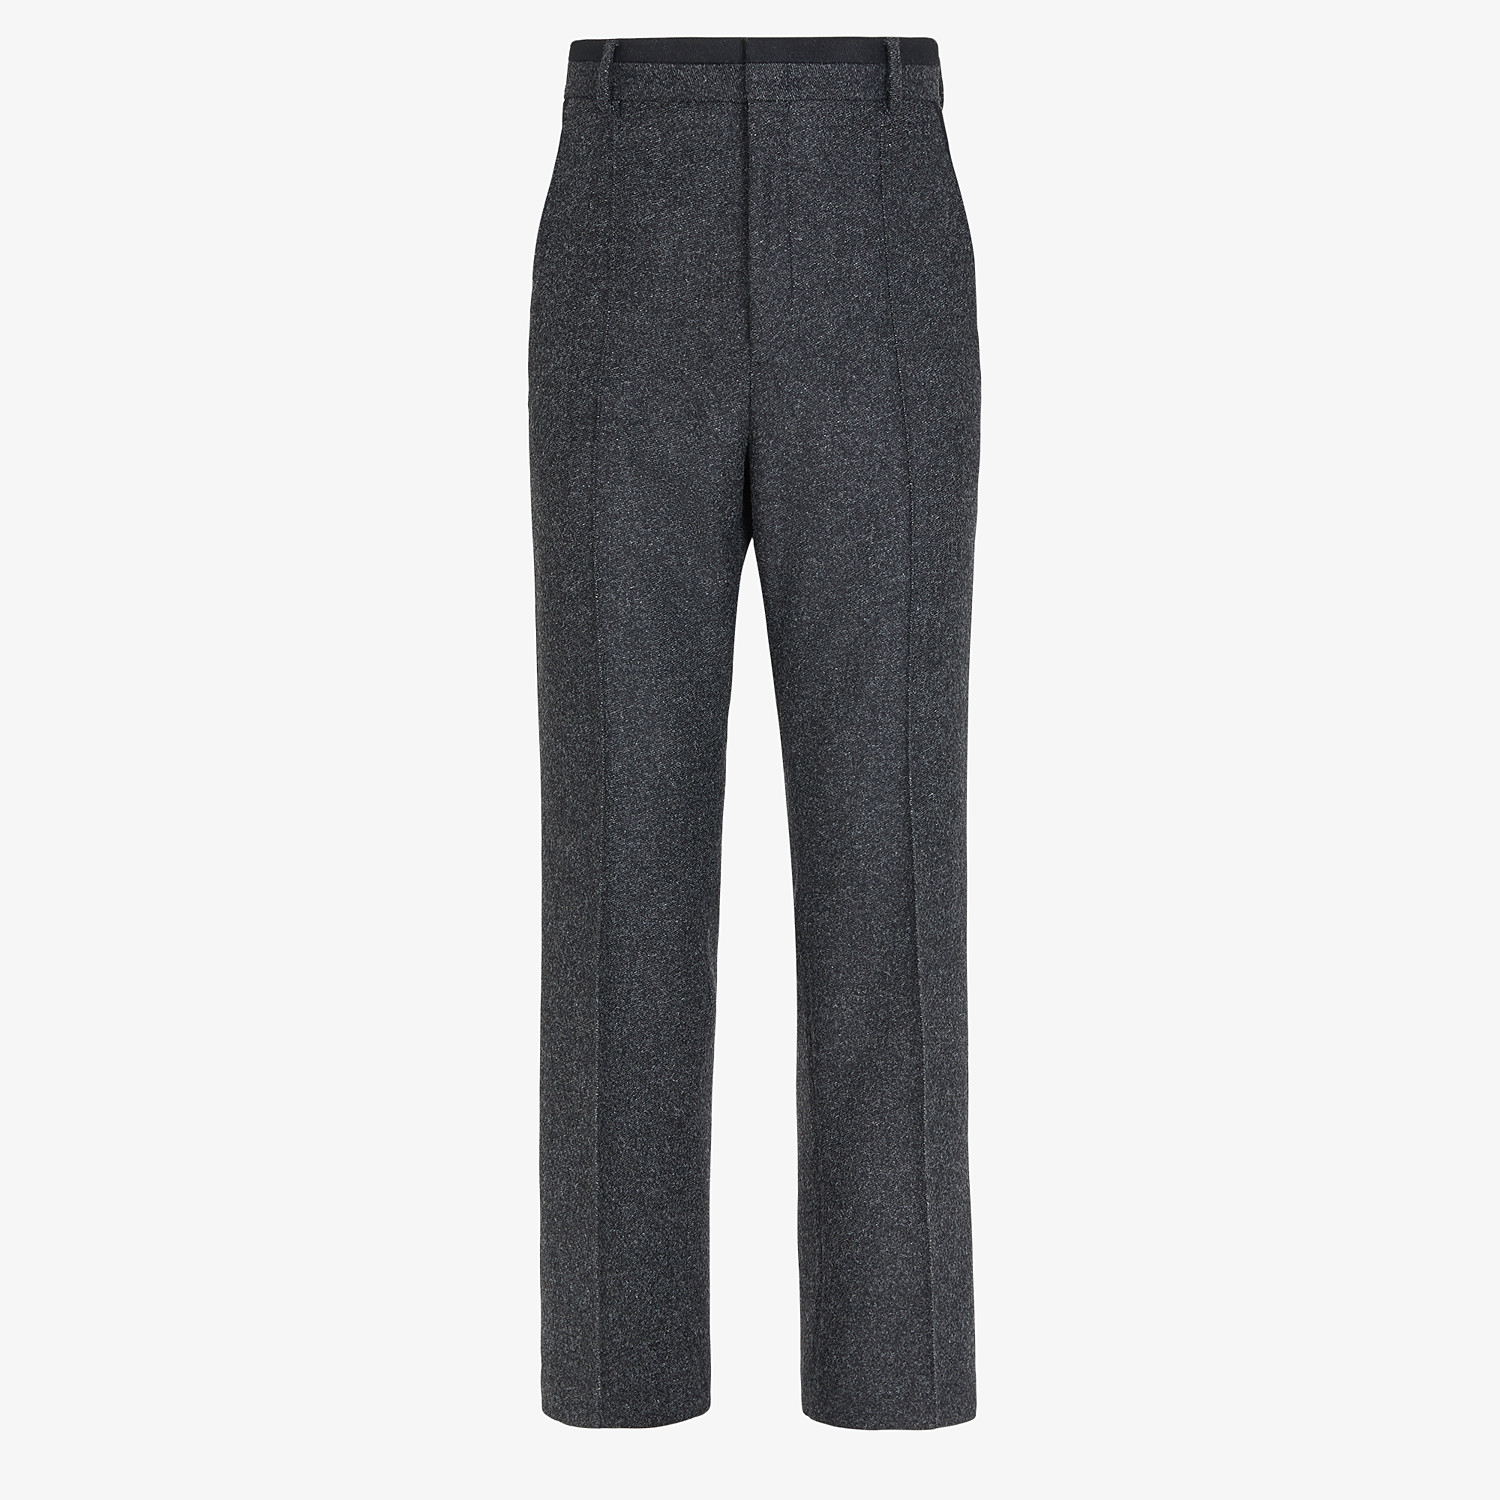 FENDI PANTS - Gray wool pants - view 1 detail